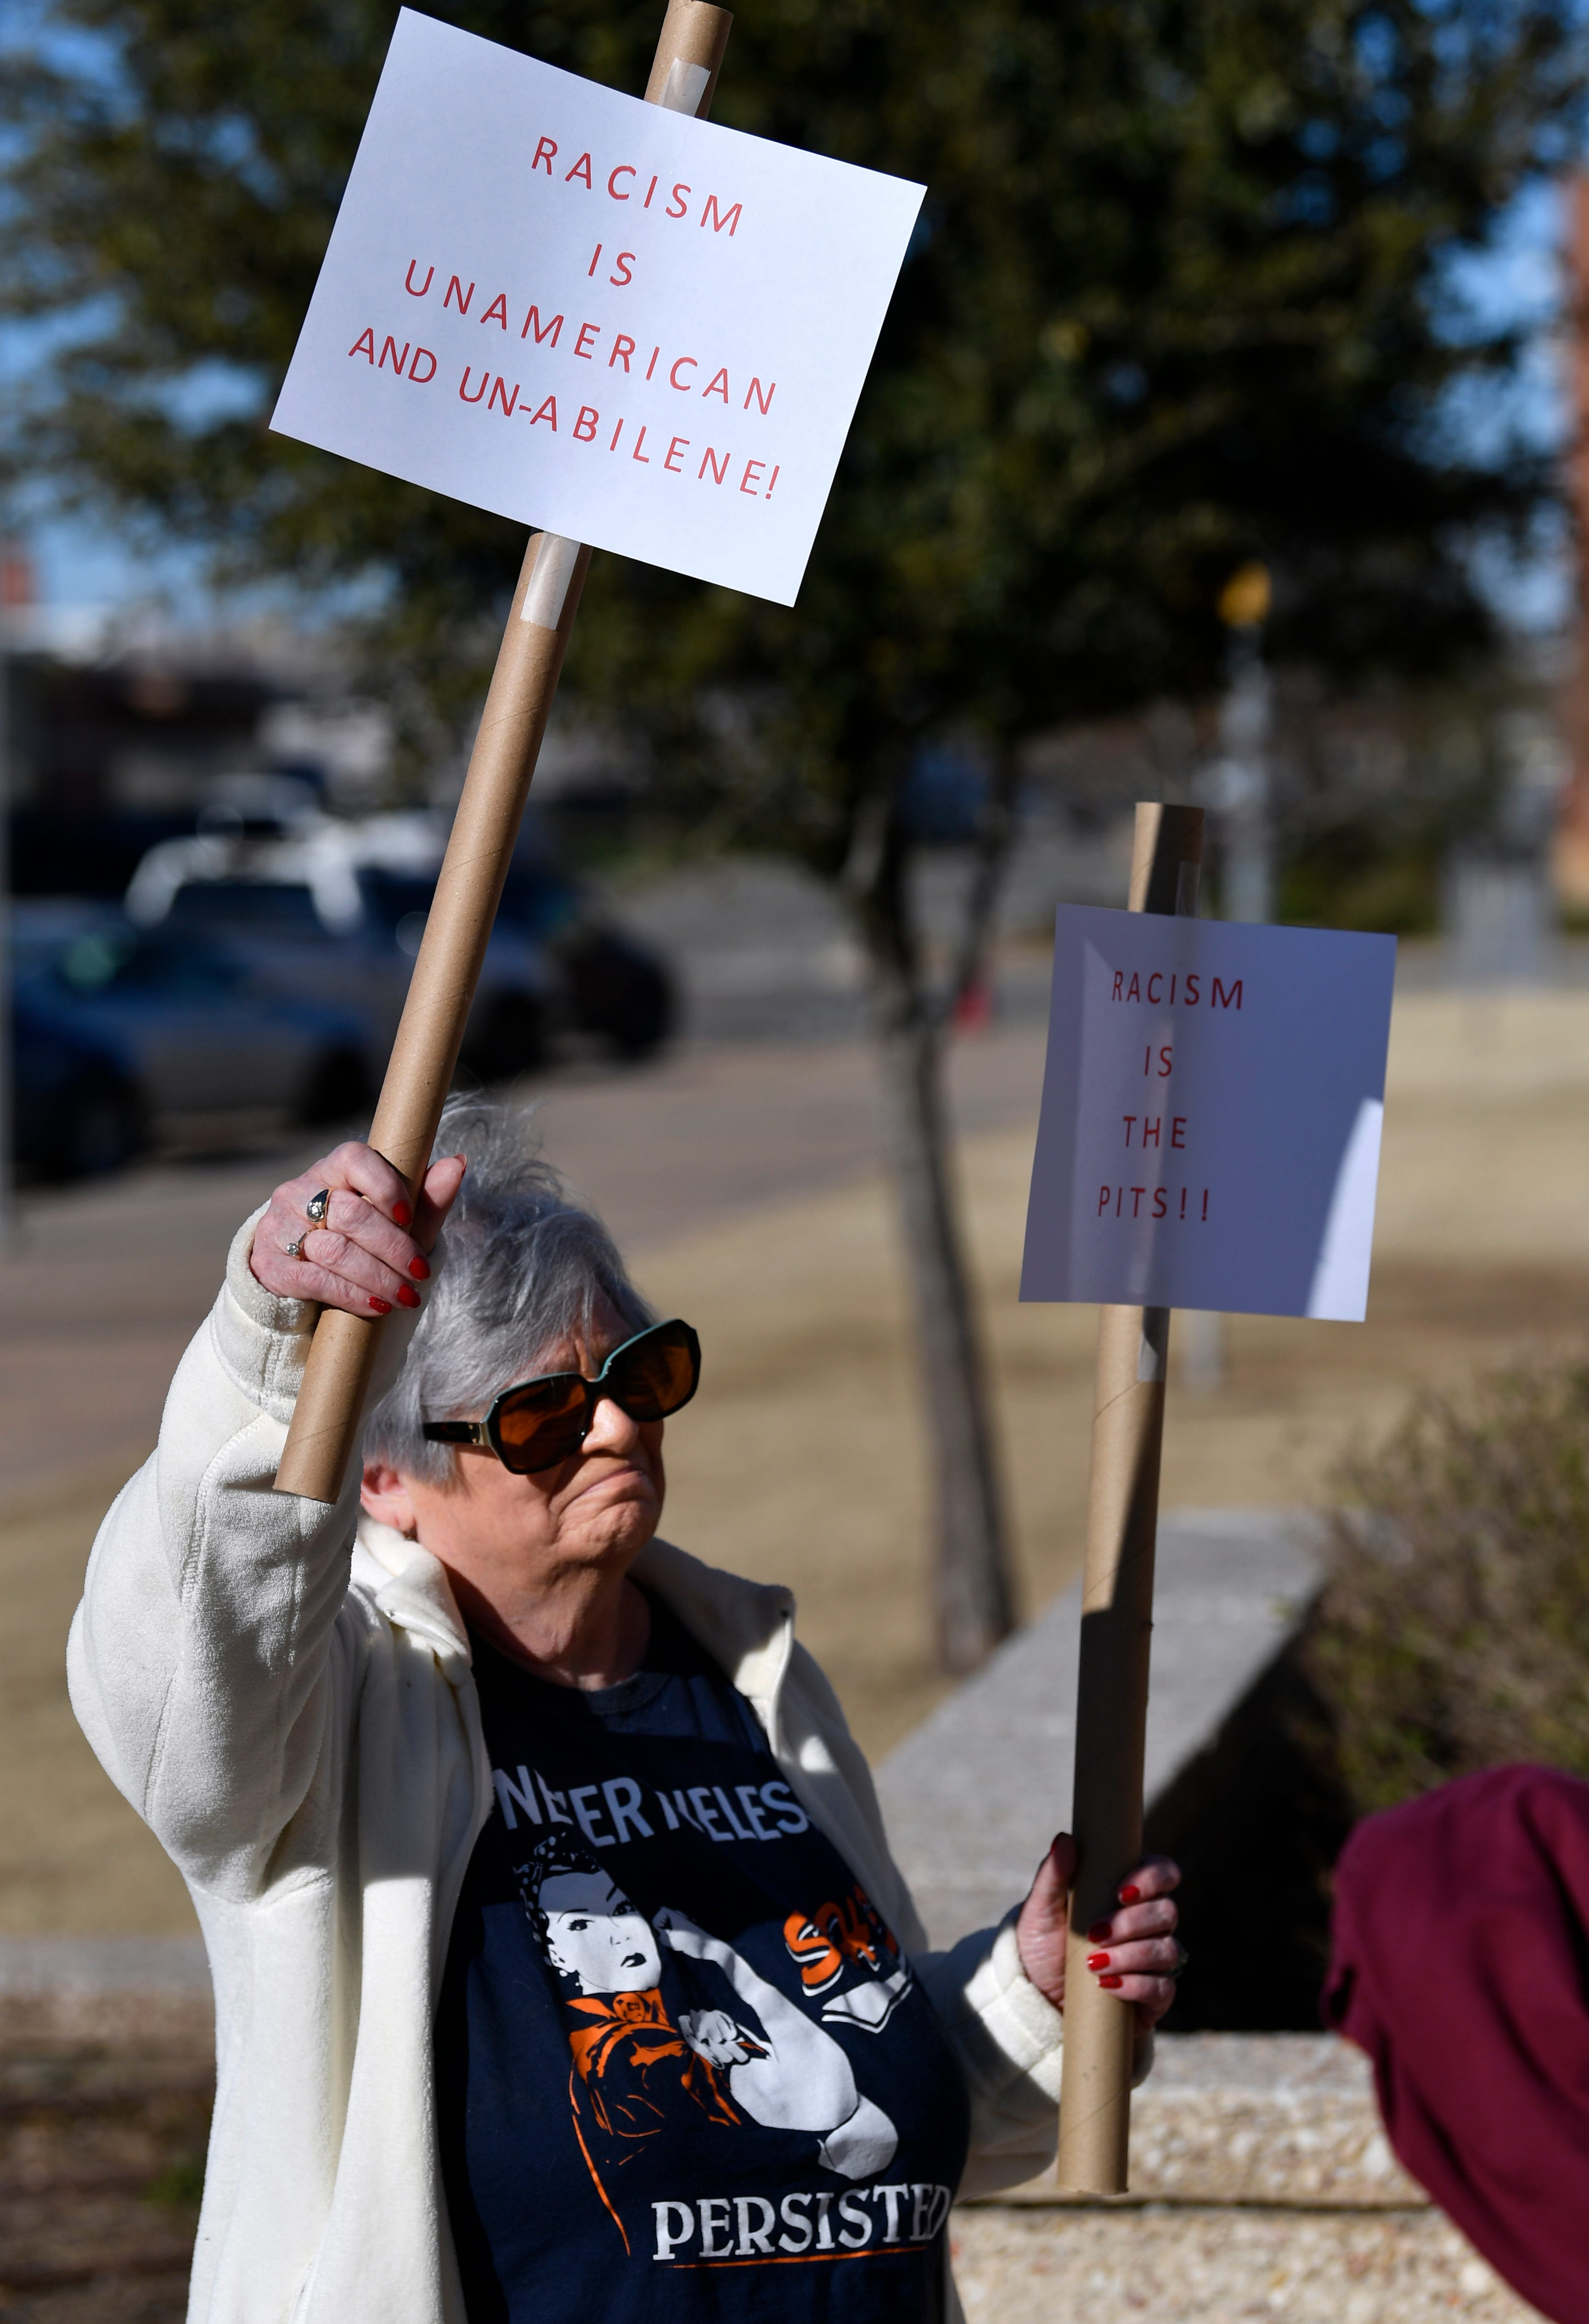 "Dianne Morphew holds a pair of signs decrying racism in front of Abilene City Hall on Wednesday. She was attending a press conference of Latino community leaders decrying social media postings by city councilman Kyle McAlister they labeled as racist. ""We are all immigrants; we need to work together and see each other as friends and equals,"" she said."